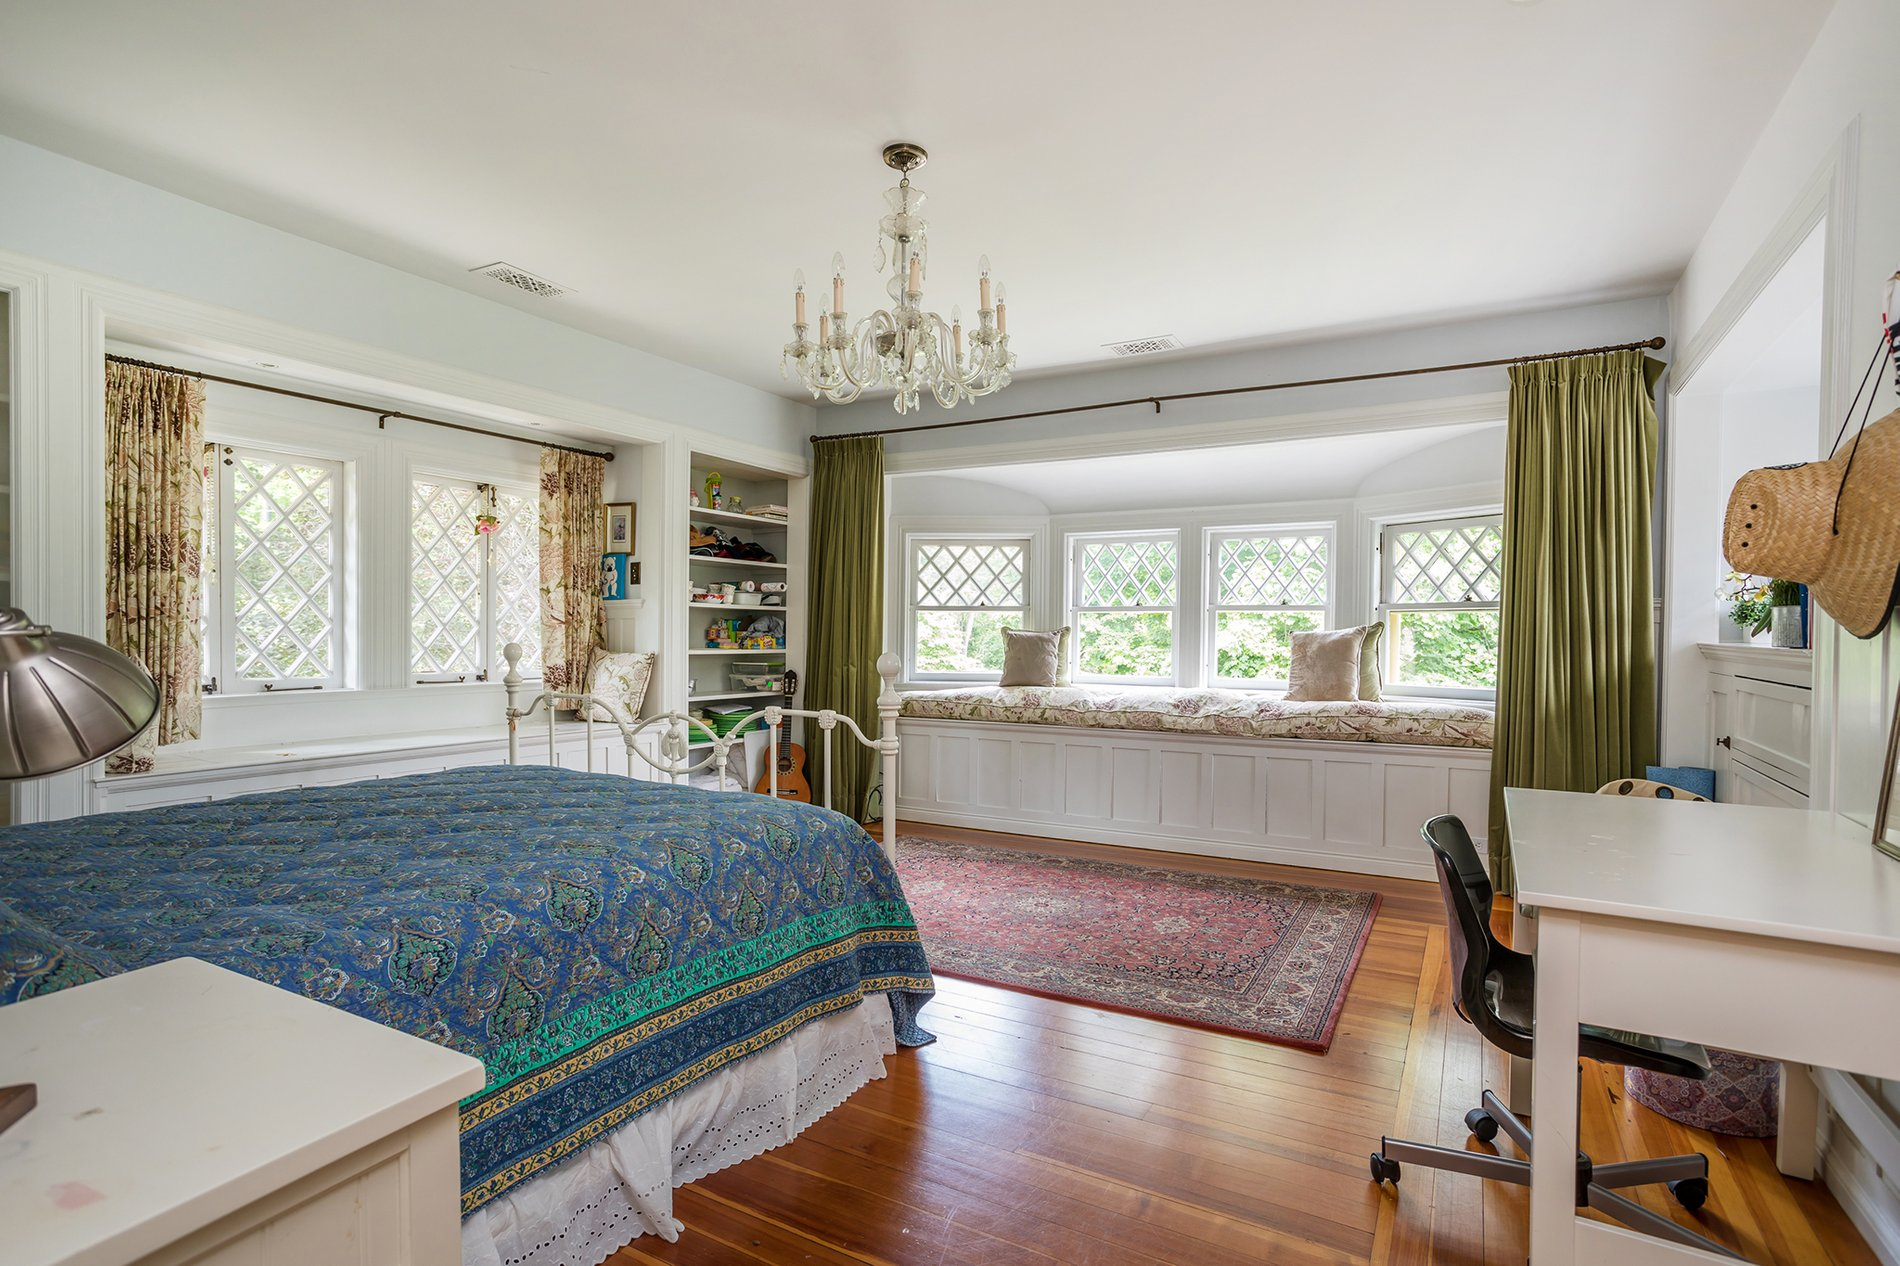 Traditional style master bedroom with a beautiful window seat featuring a single plush patterned cushion.